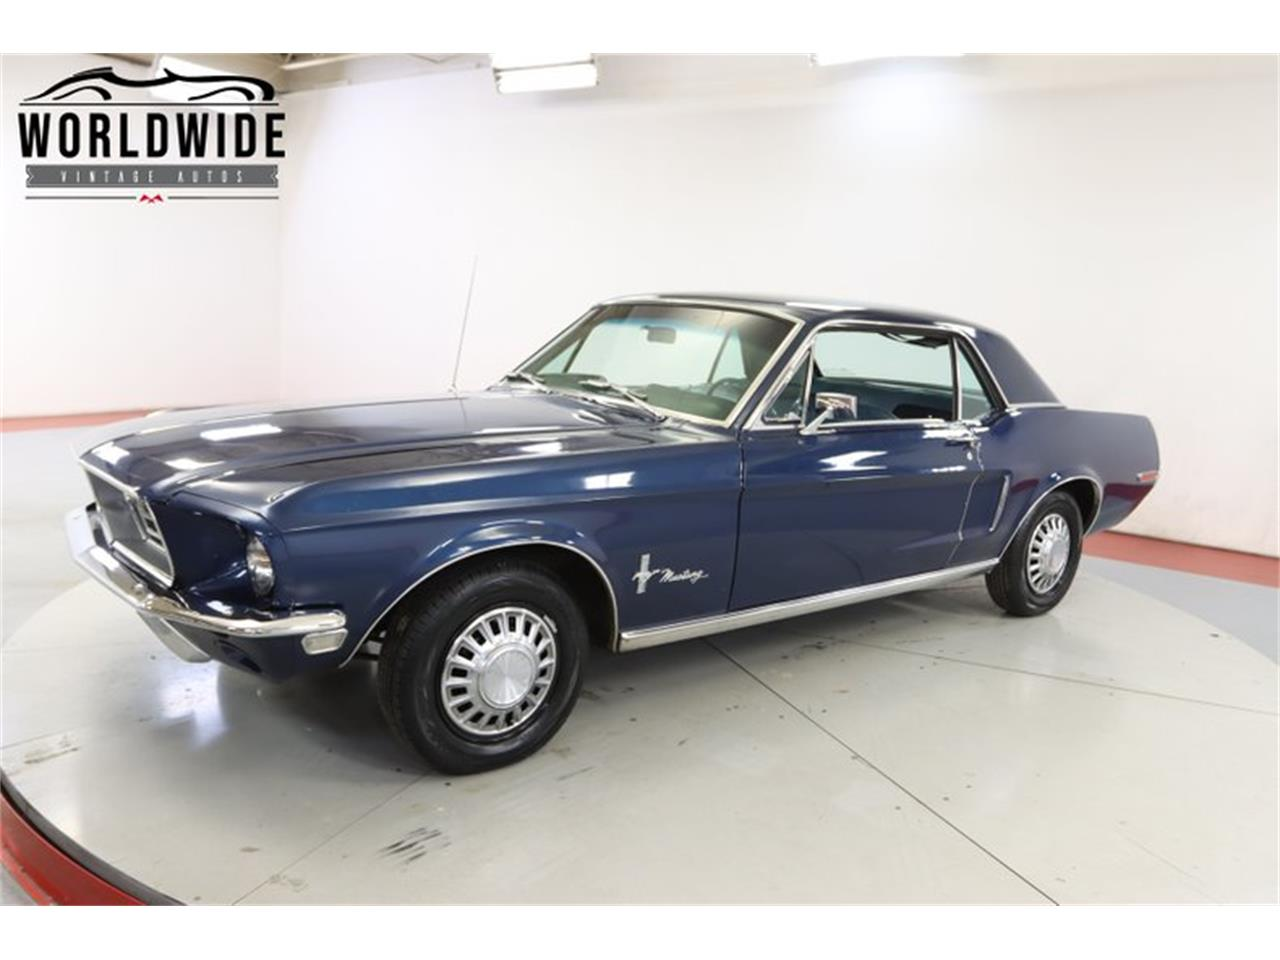 Ford Mustang V8 289 1968 prix tout compris 1968